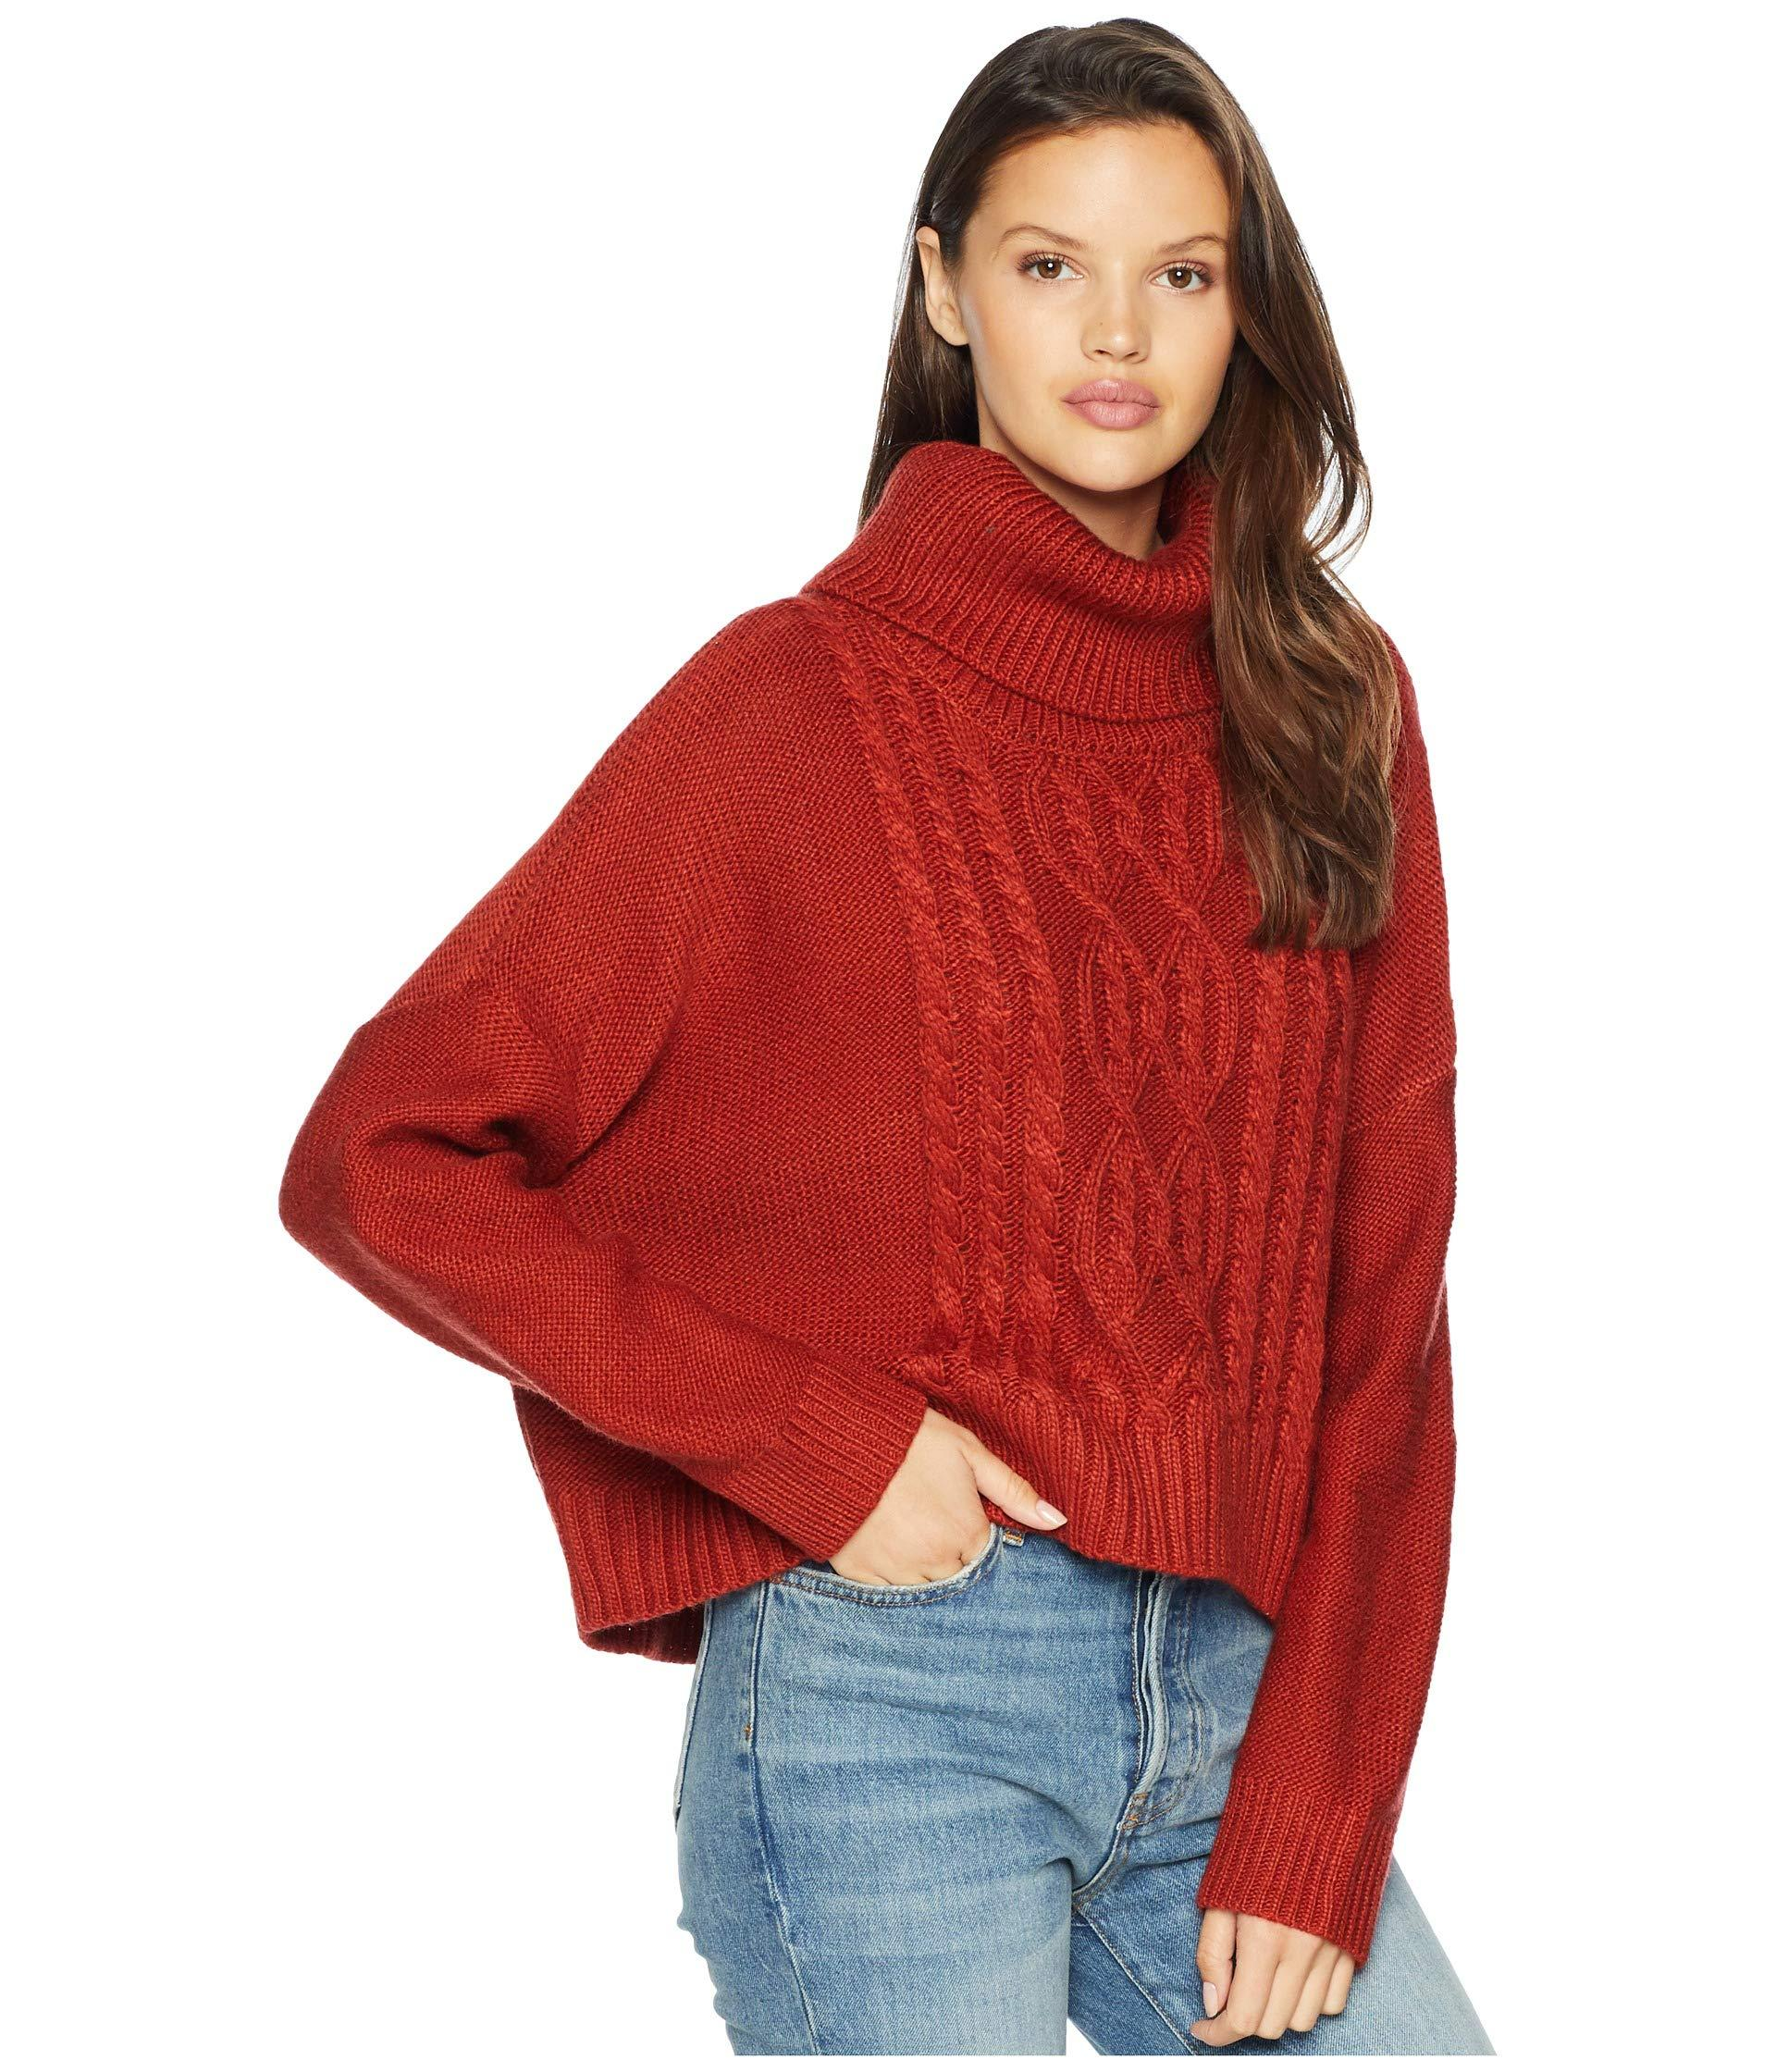 5d937df4d0 Jack BB Dakota - Red Say Anything Raglan Sleeve Cable Knit Sweater - Lyst.  View fullscreen